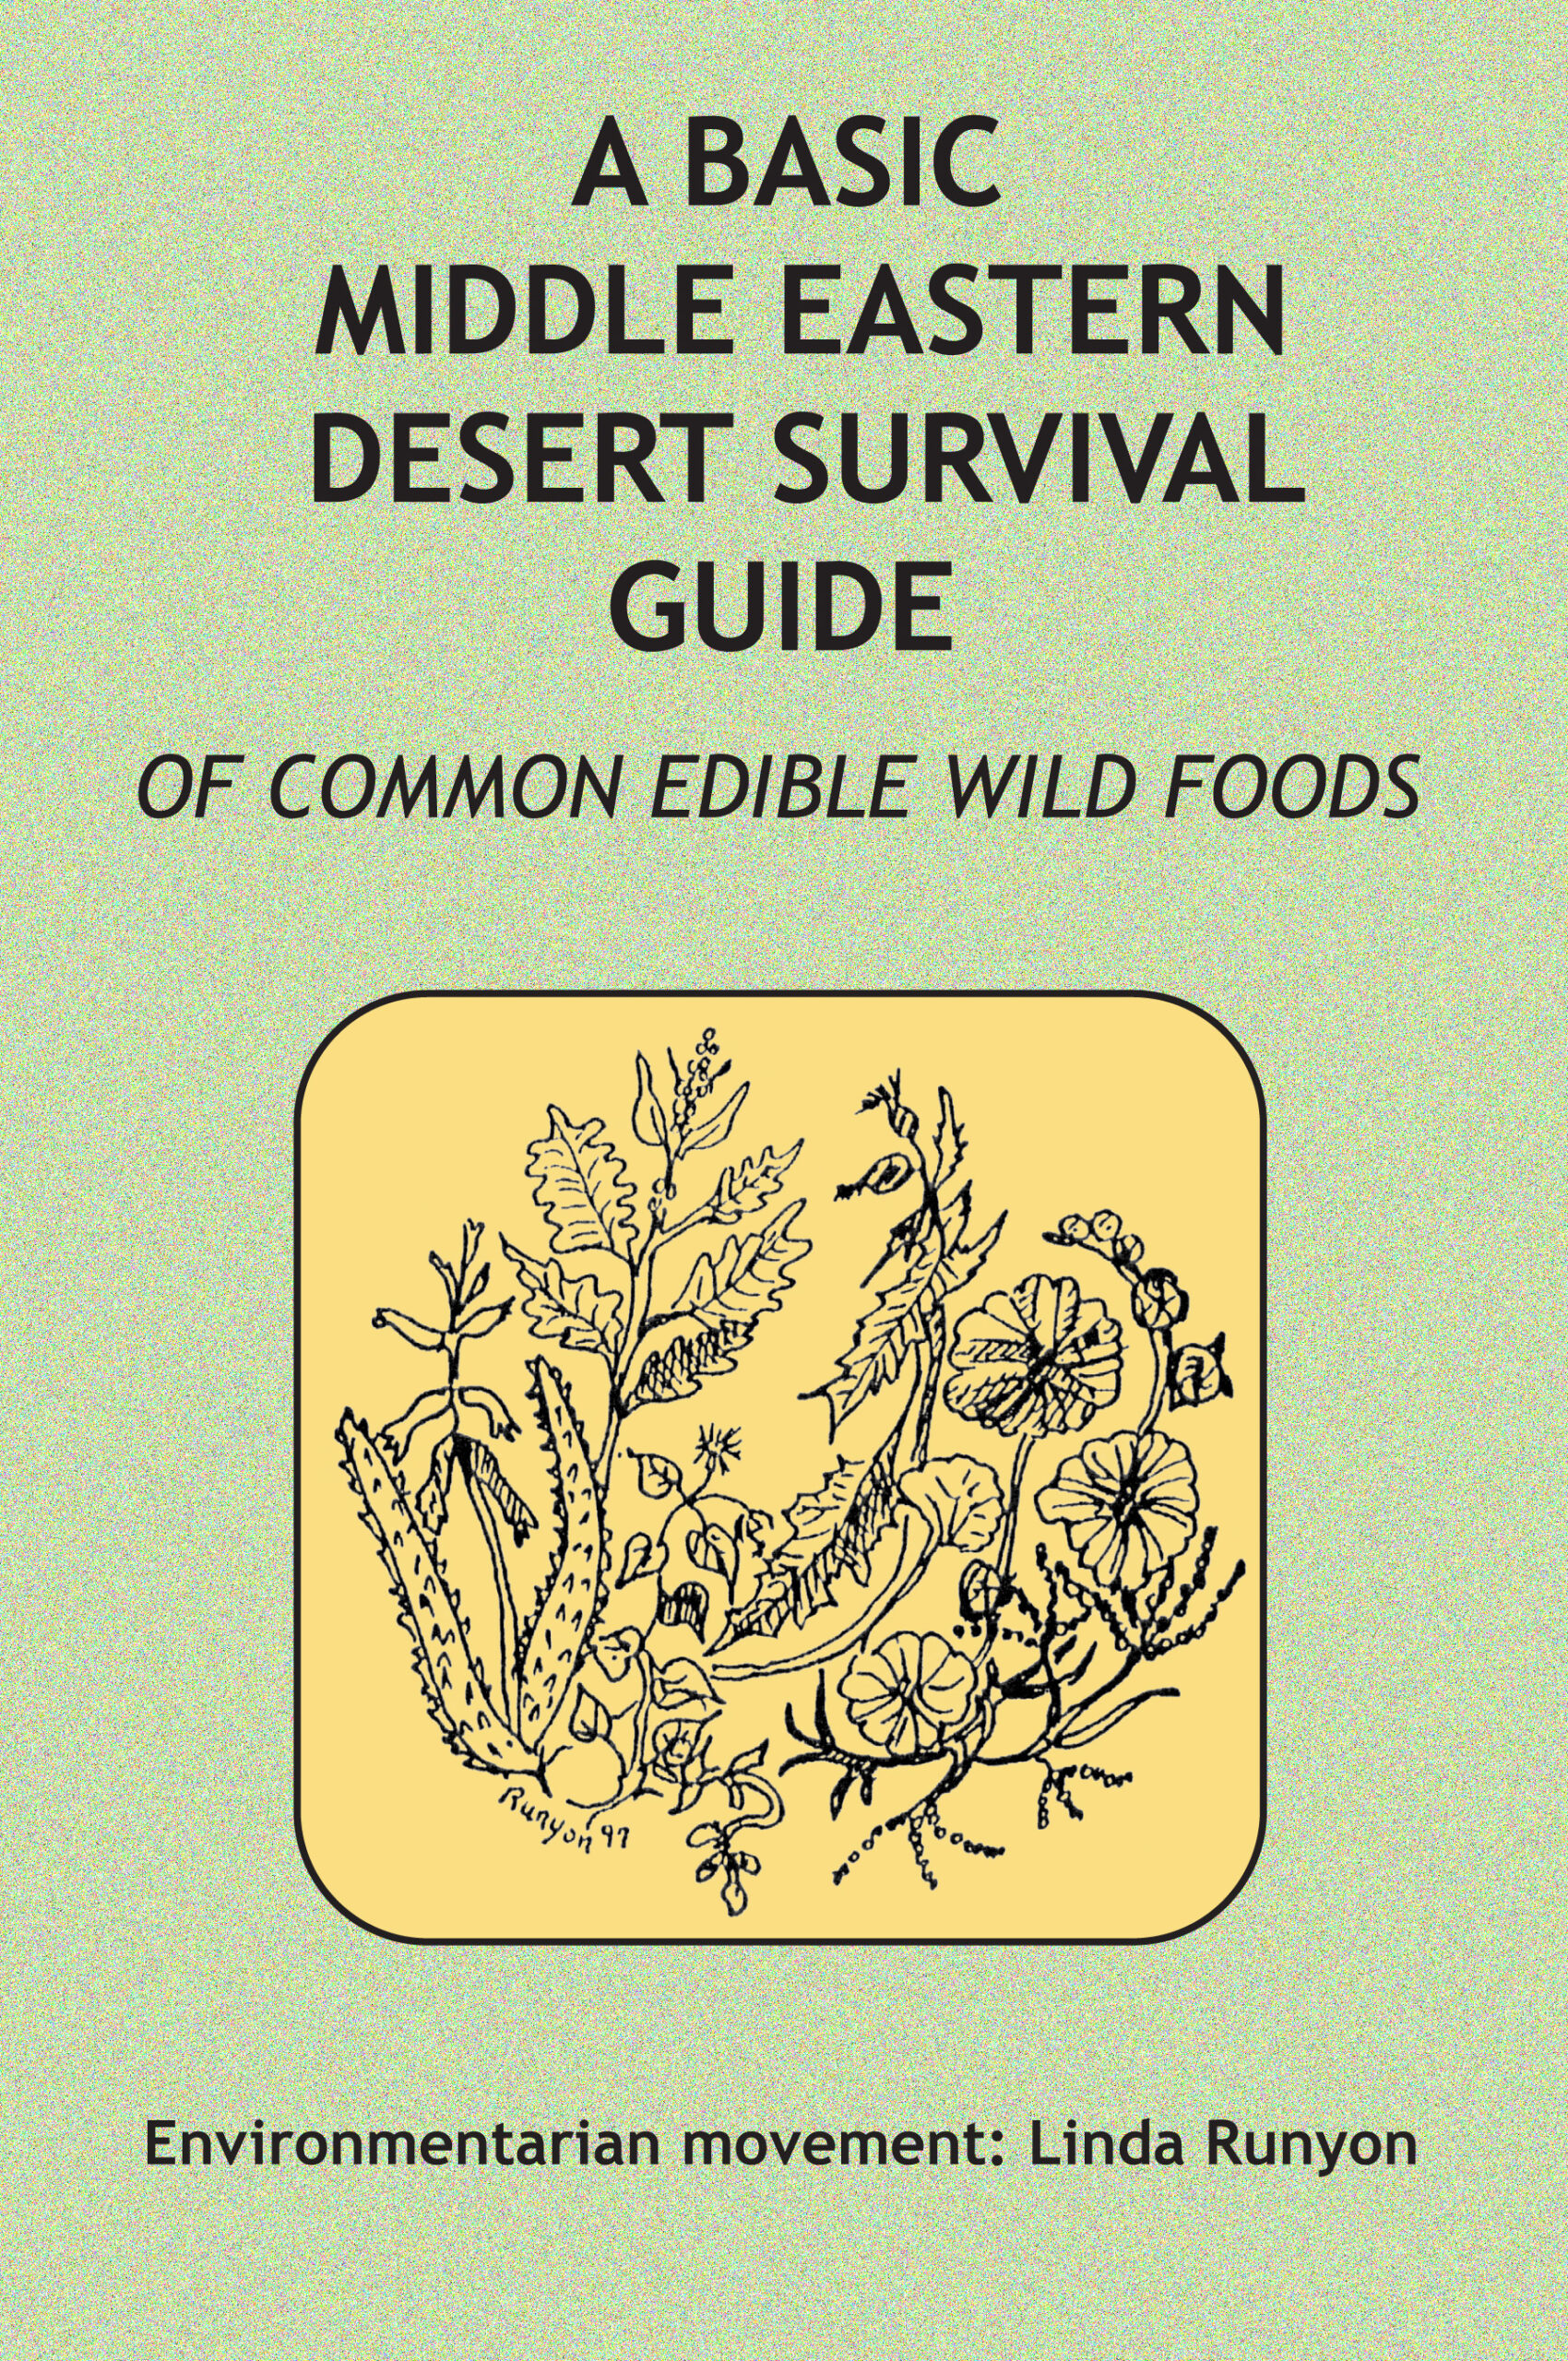 A Basic Middle Eastern Desert Survival Guide cover